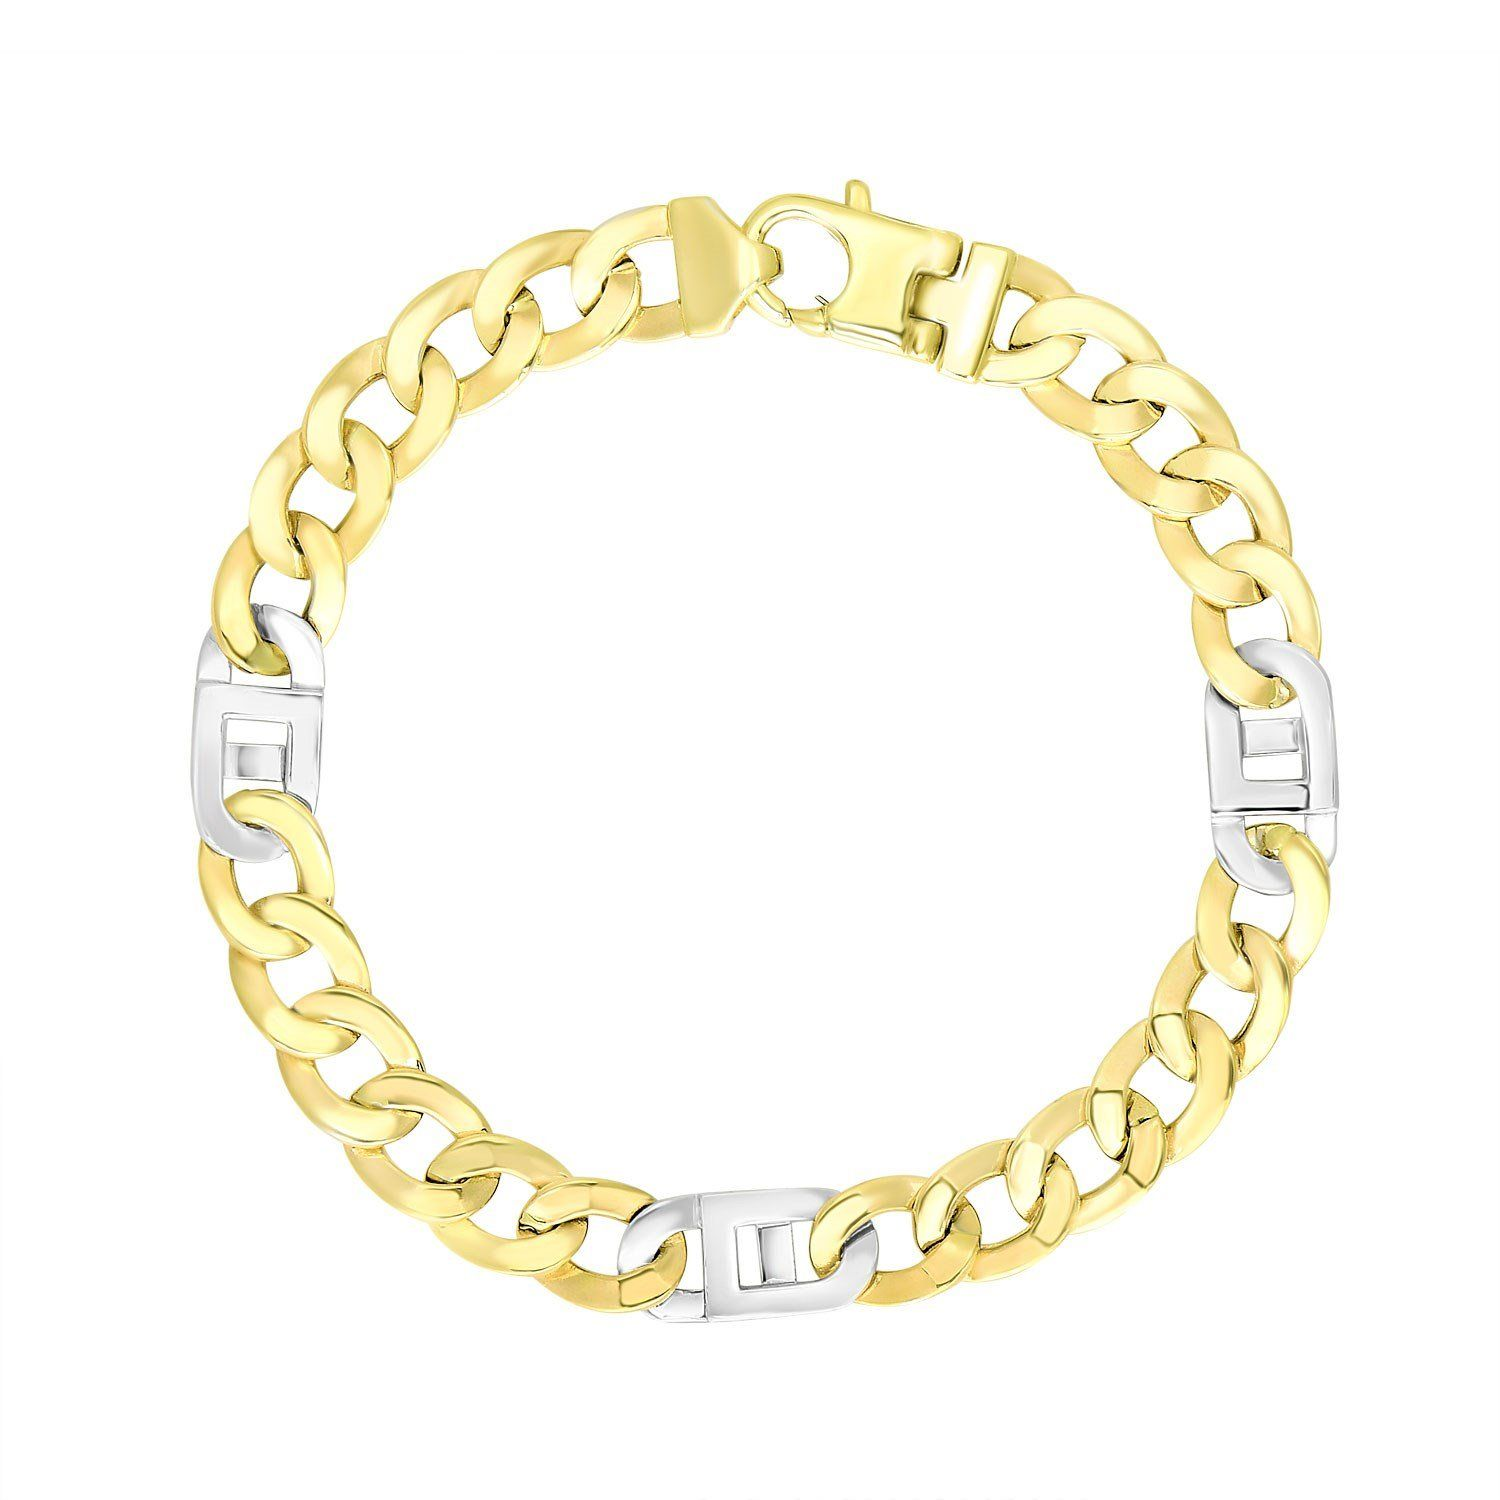 K twotone gold menus bracelet with curb design chain gold chain